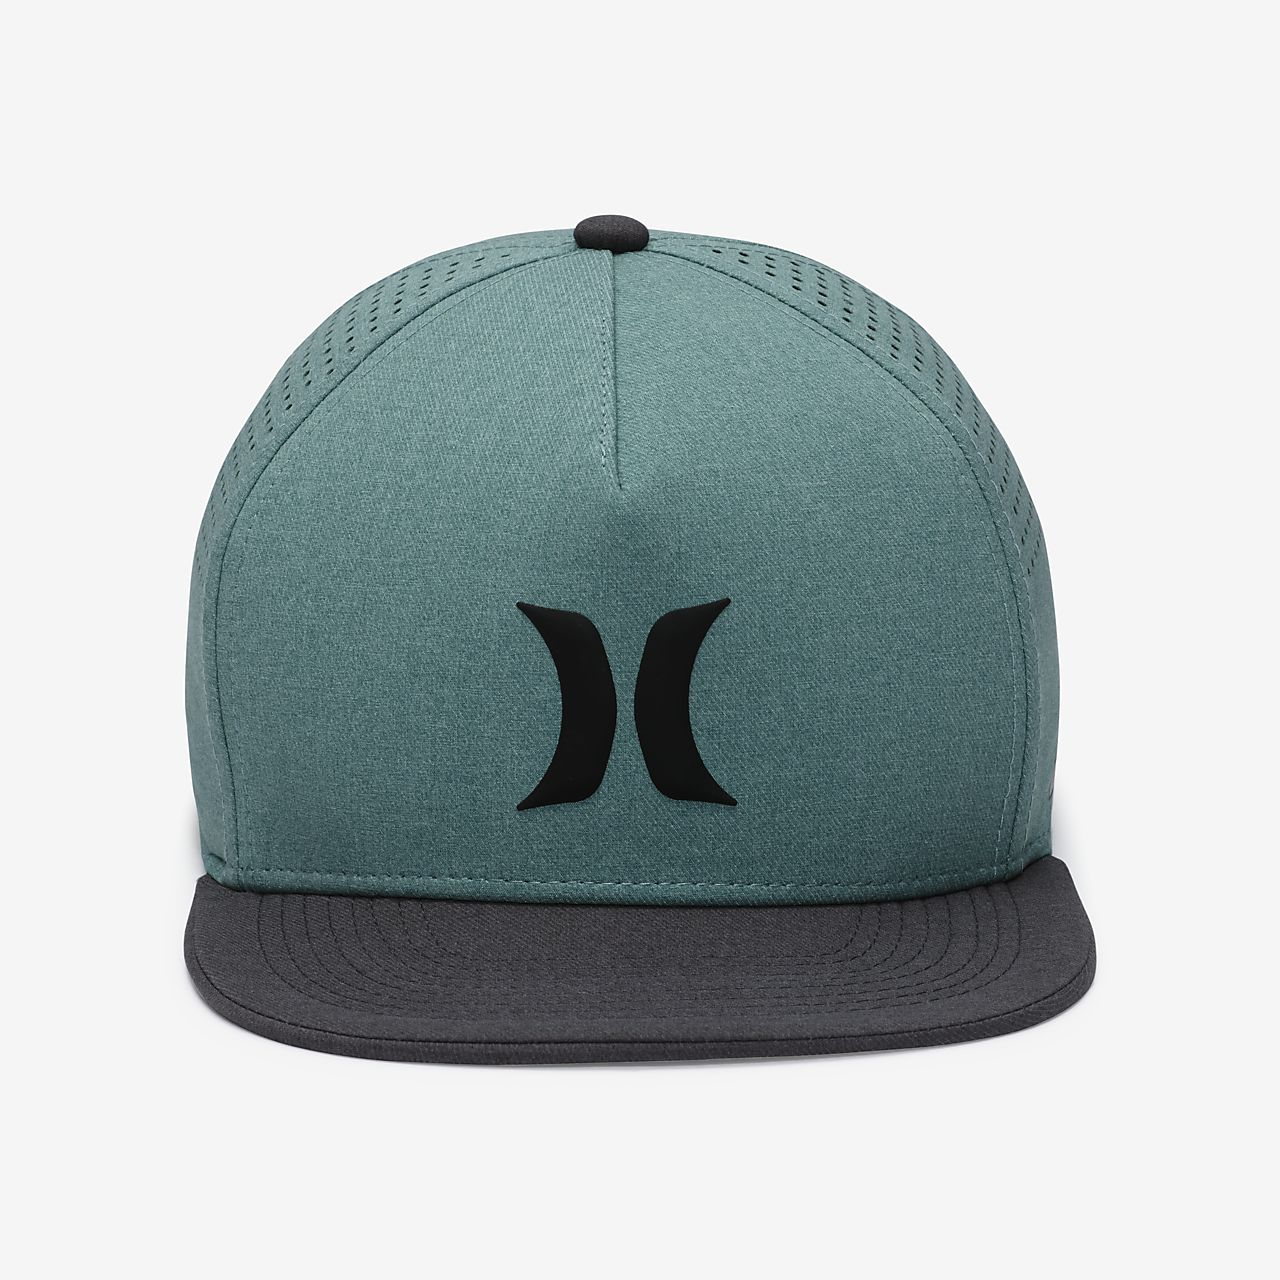 836ab081797 Hurley Dri-FIT Icon Men s Adjustable Hat. Nike.com AU